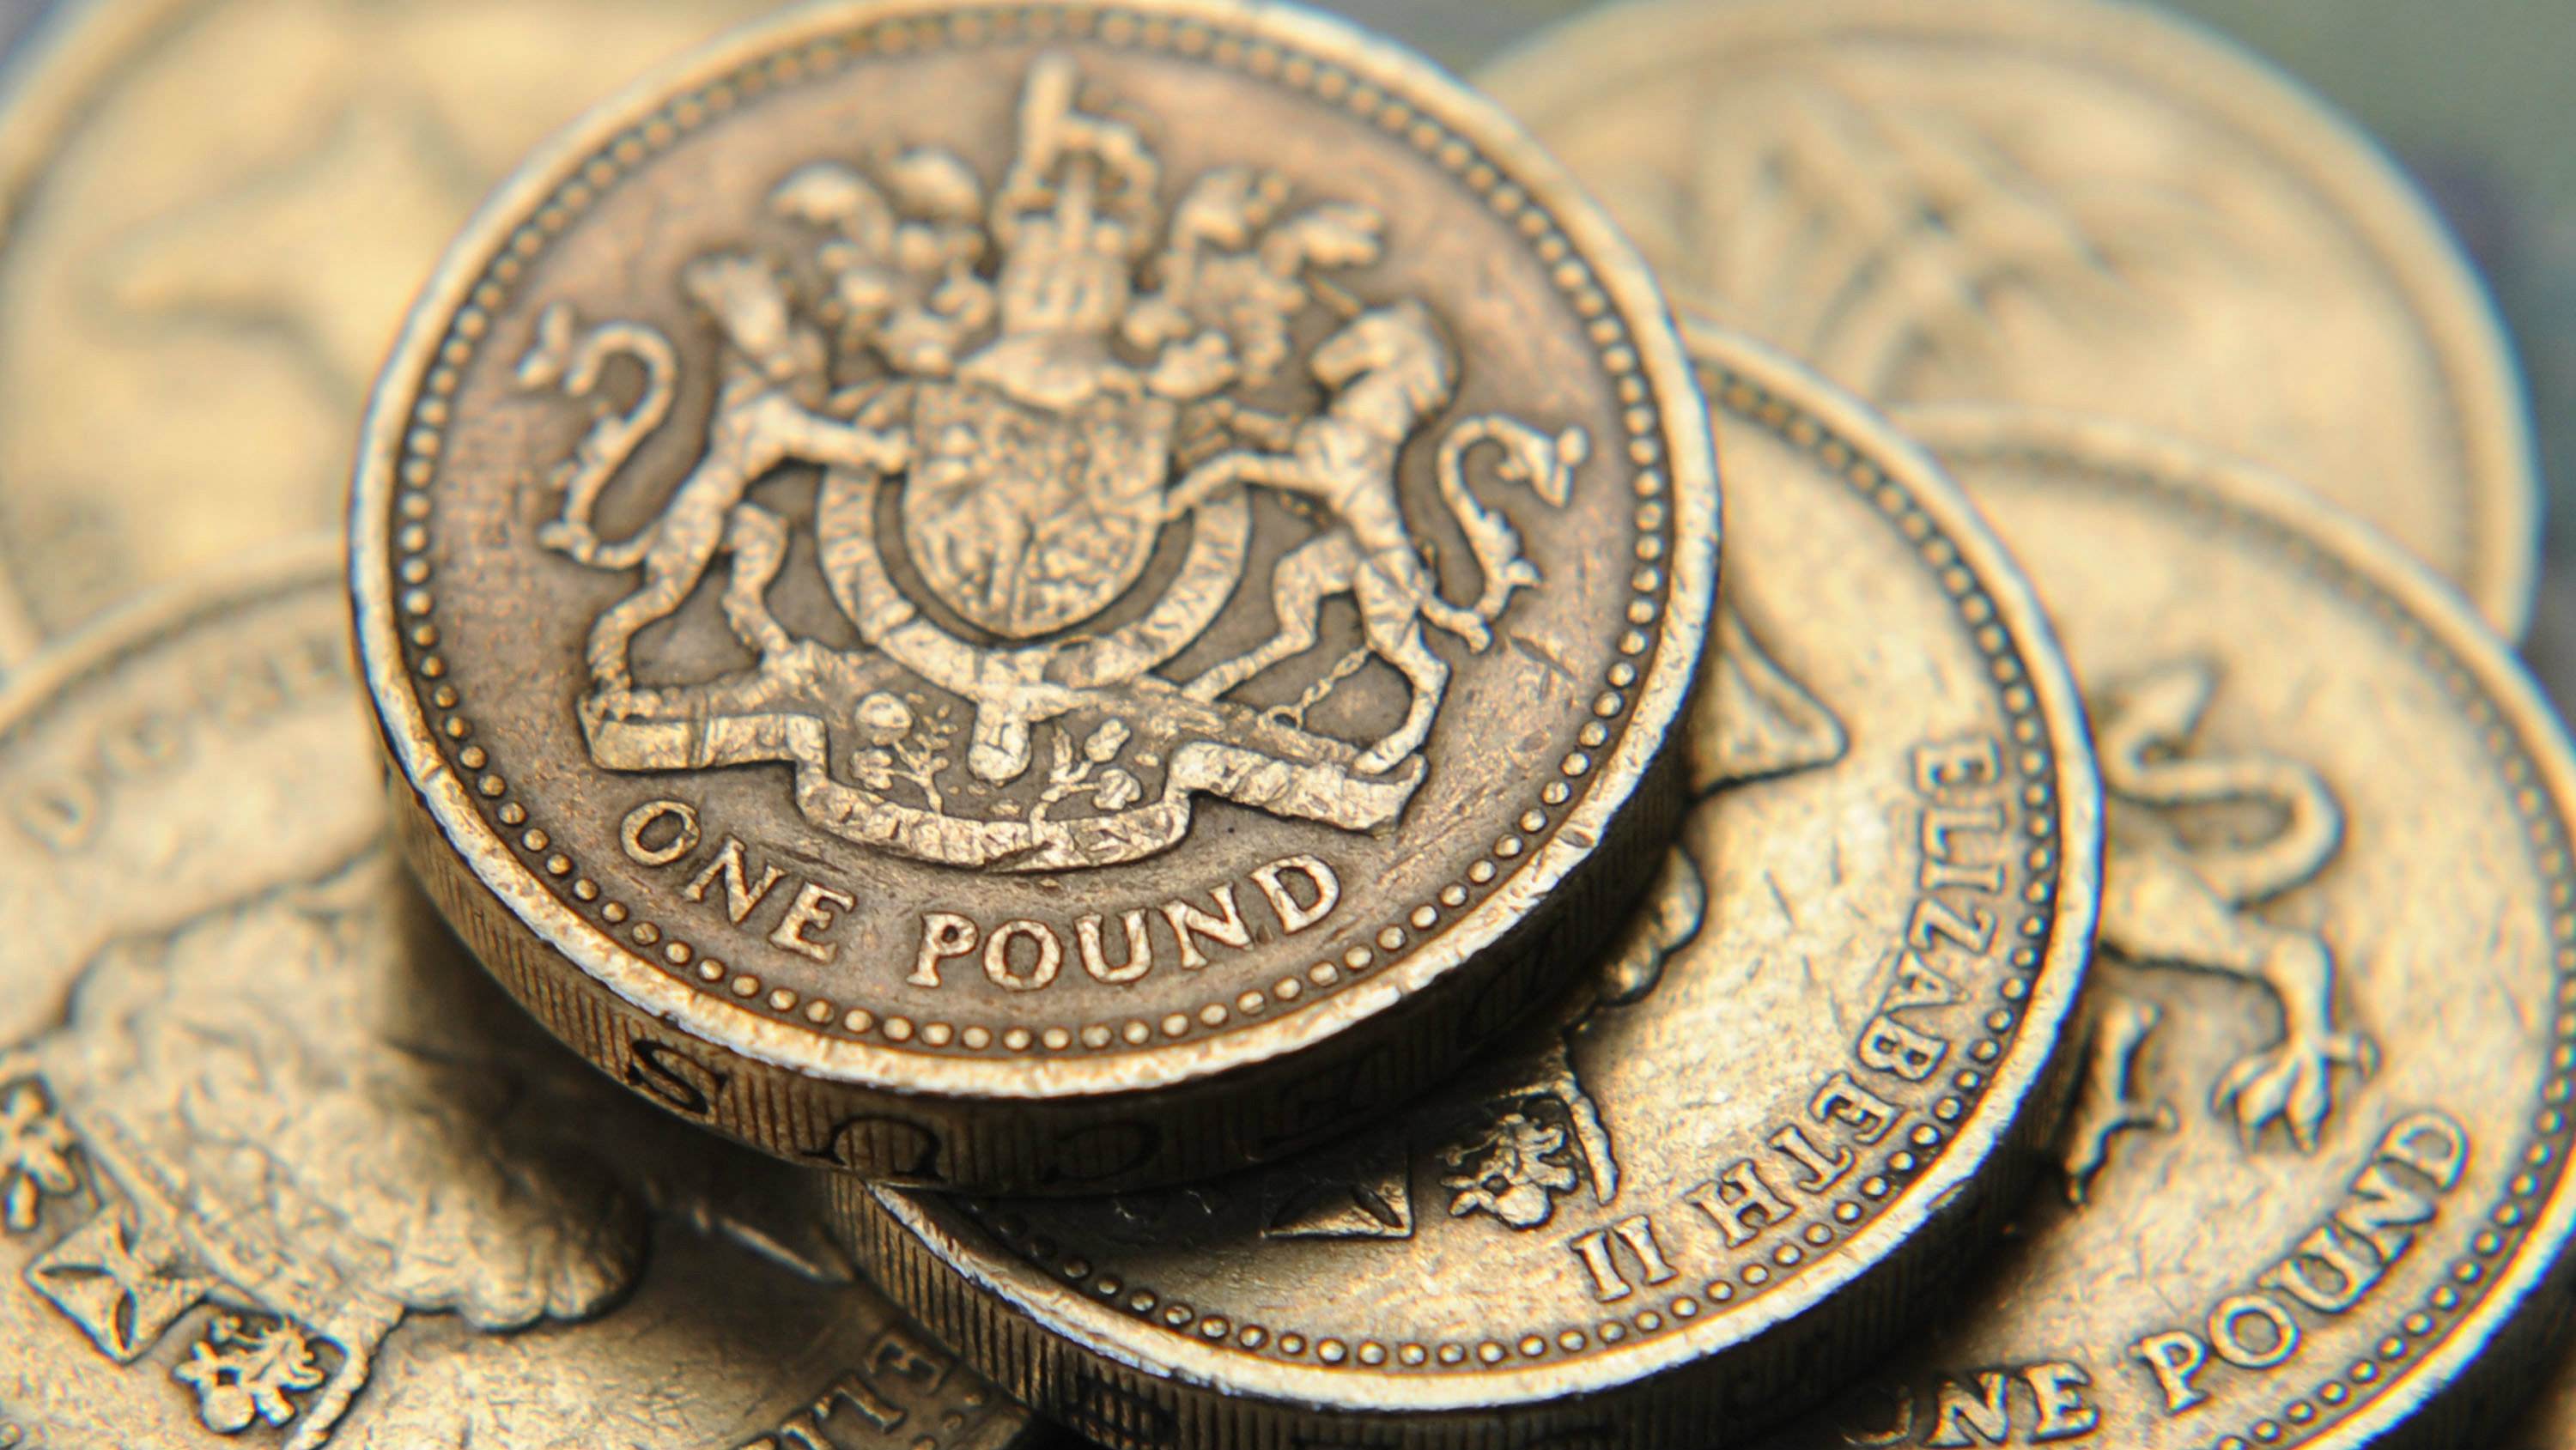 Convert 10 GBP to USD; 10 British Pound Sterling to US Dollar